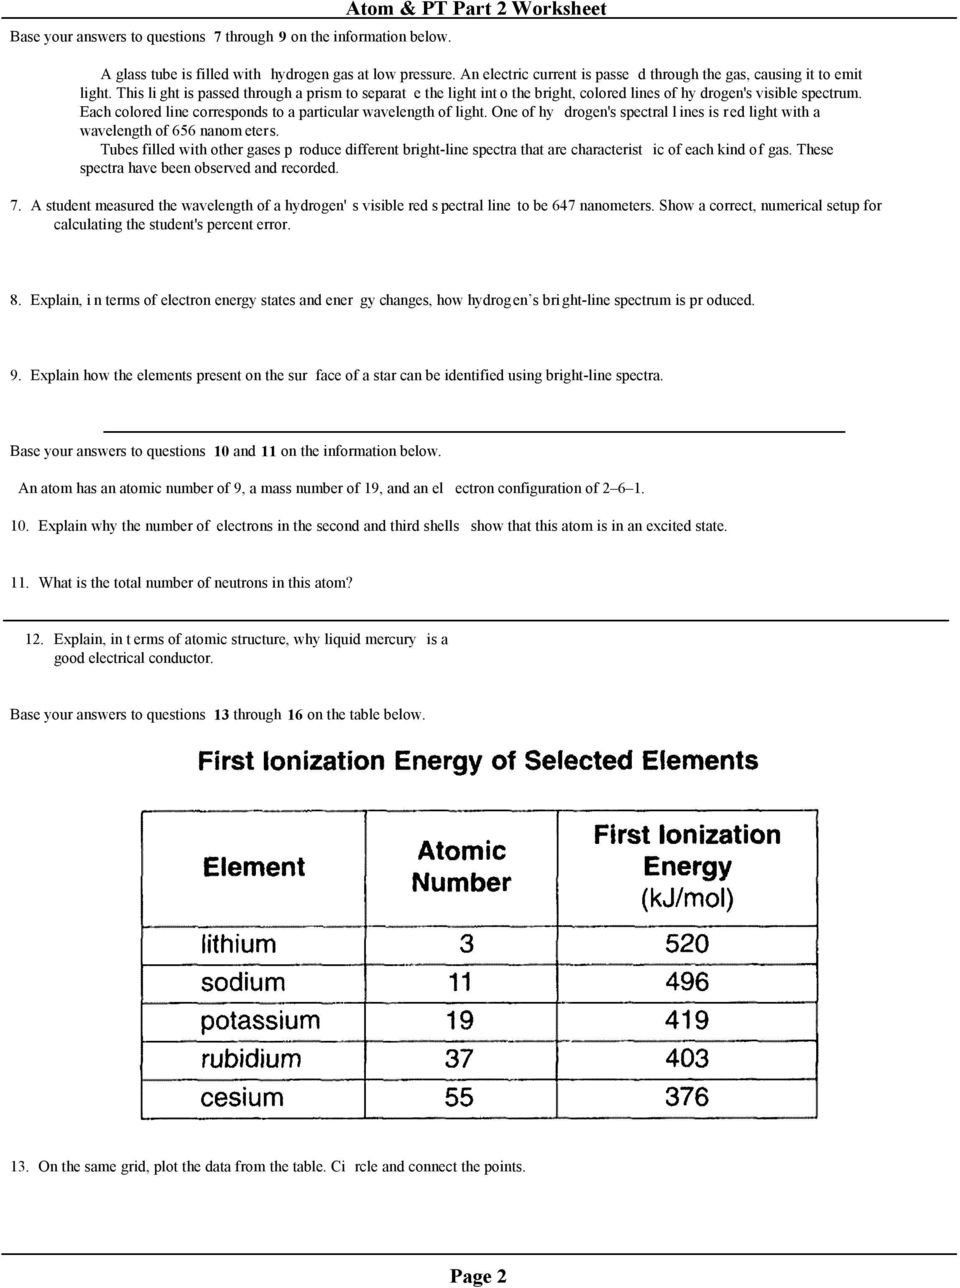 Atomic Structure Review Worksheet Regents Review Atom Pt Part 2 Worksheet Mr Beauchamp In 2020 Atomic Structure Evaluating Algebraic Expressions Atom